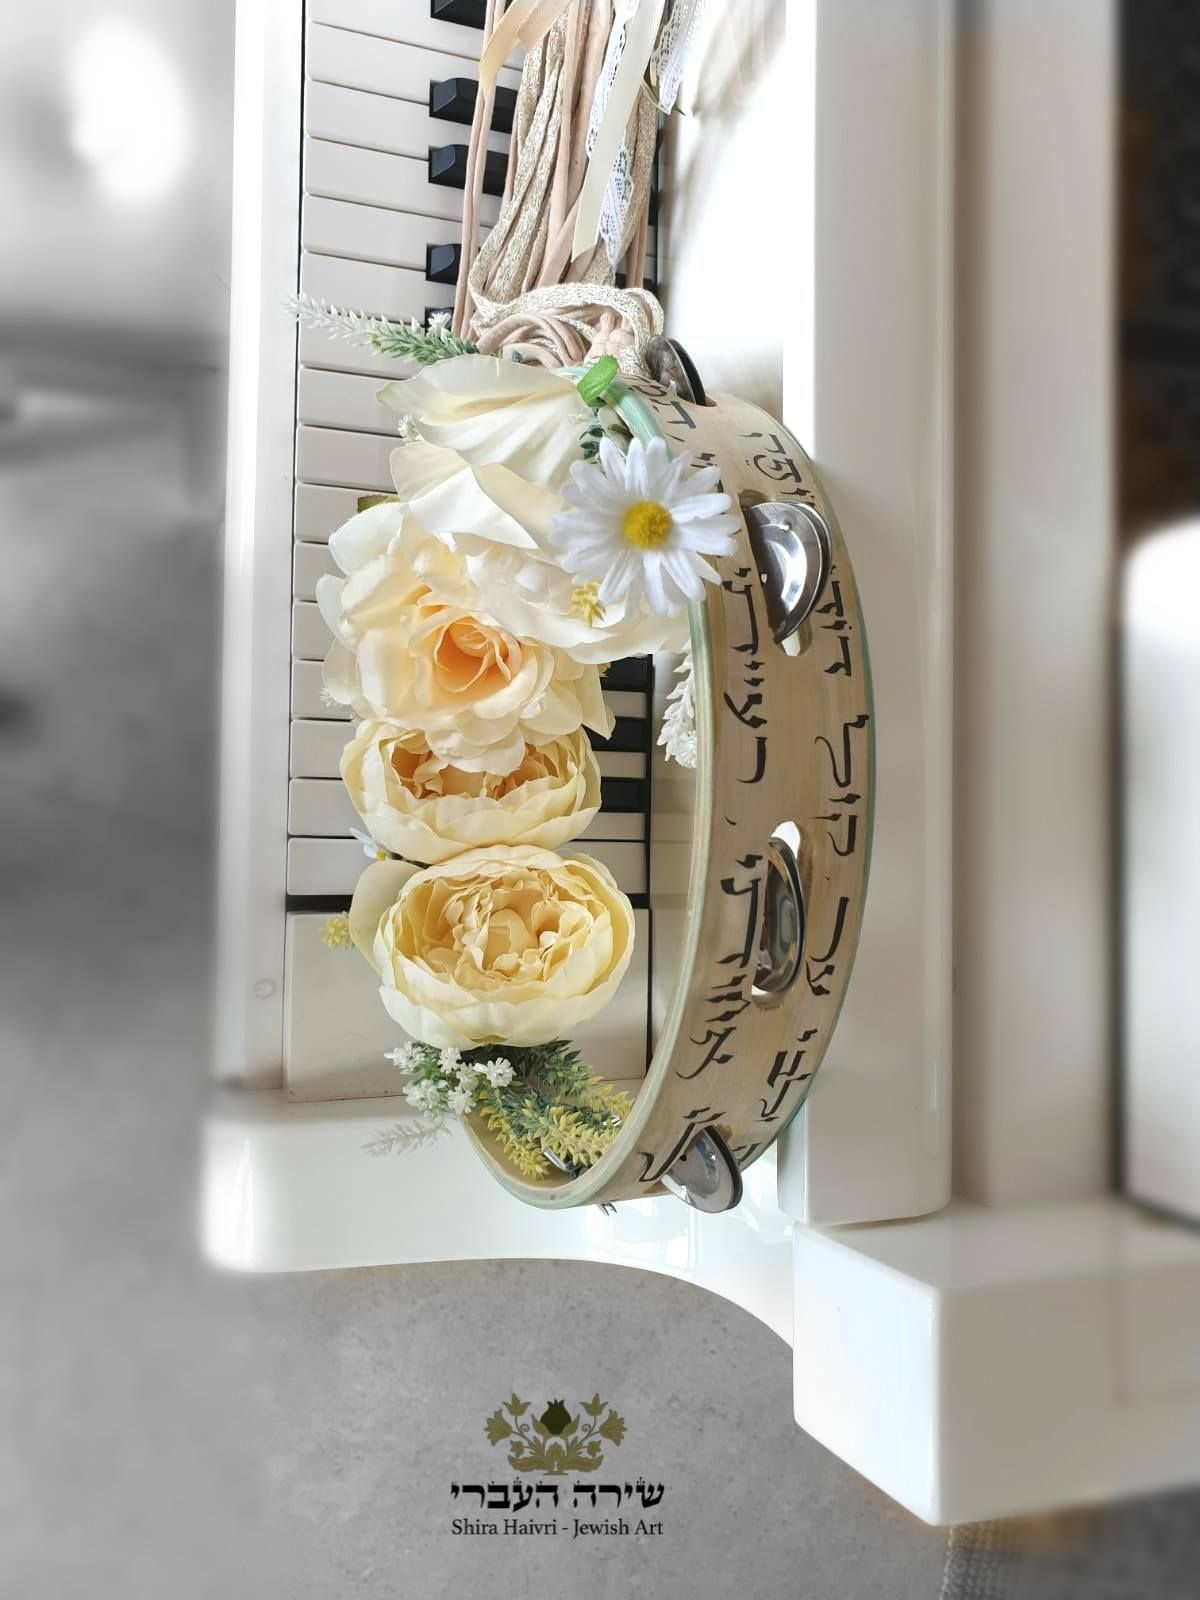 A Special Wedding Flowers Tambourine:) With The Text You